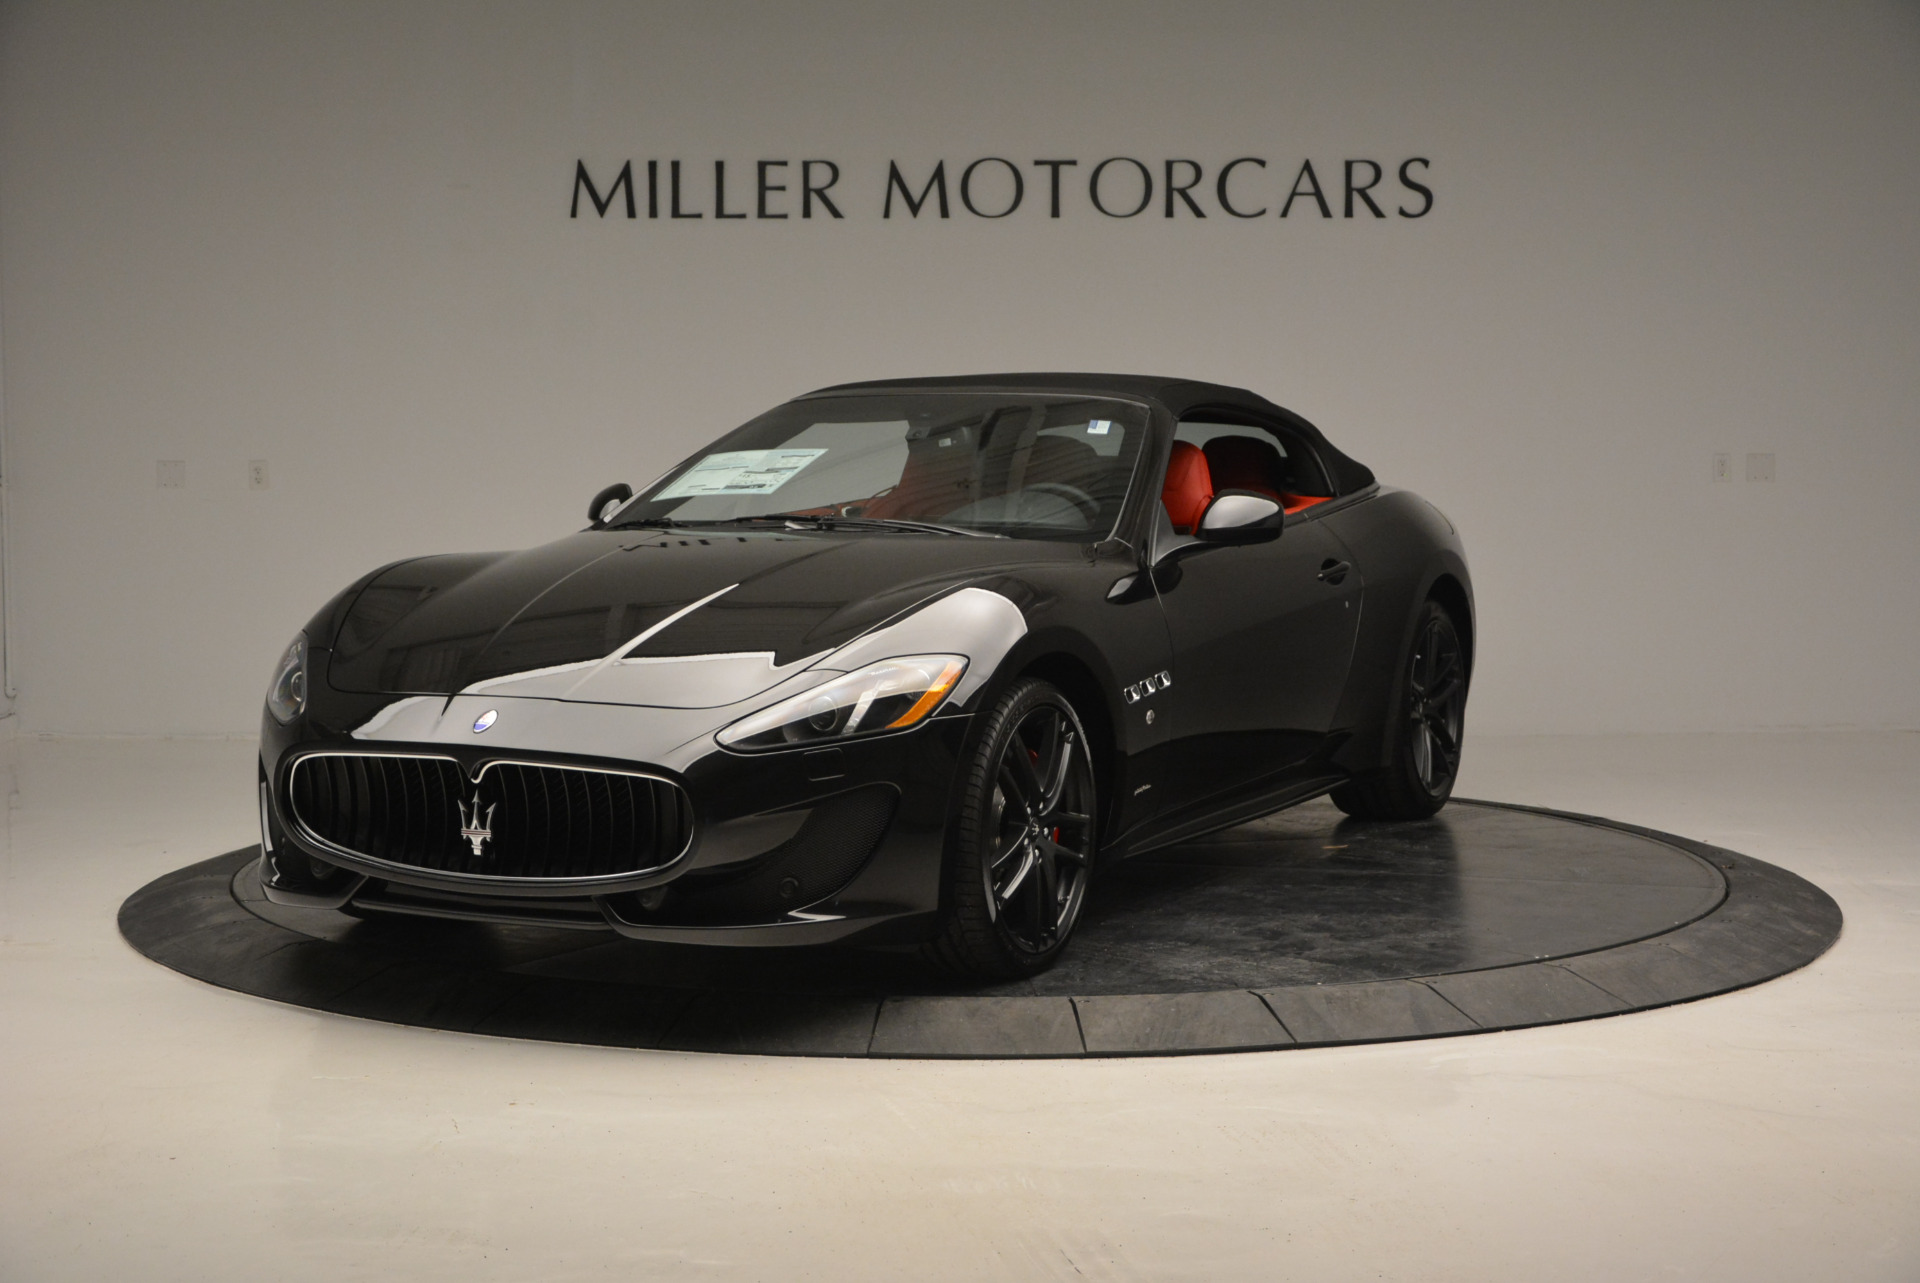 New 2017 Maserati GranTurismo Cab Sport For Sale In Westport, CT 687_p2